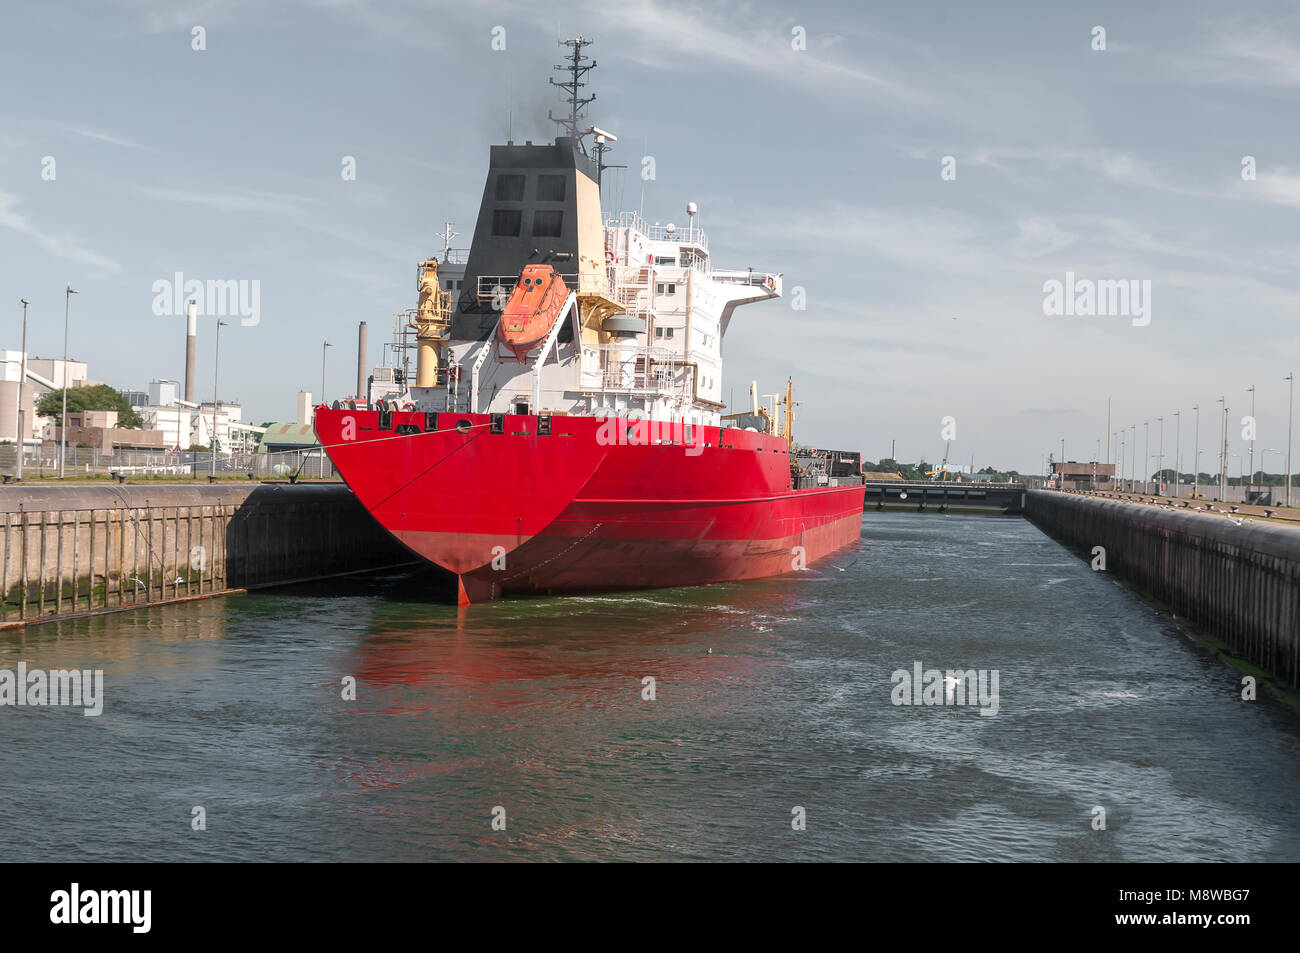 Oil Chemical Tanker Vessel is moored in a large lock - Stock Image